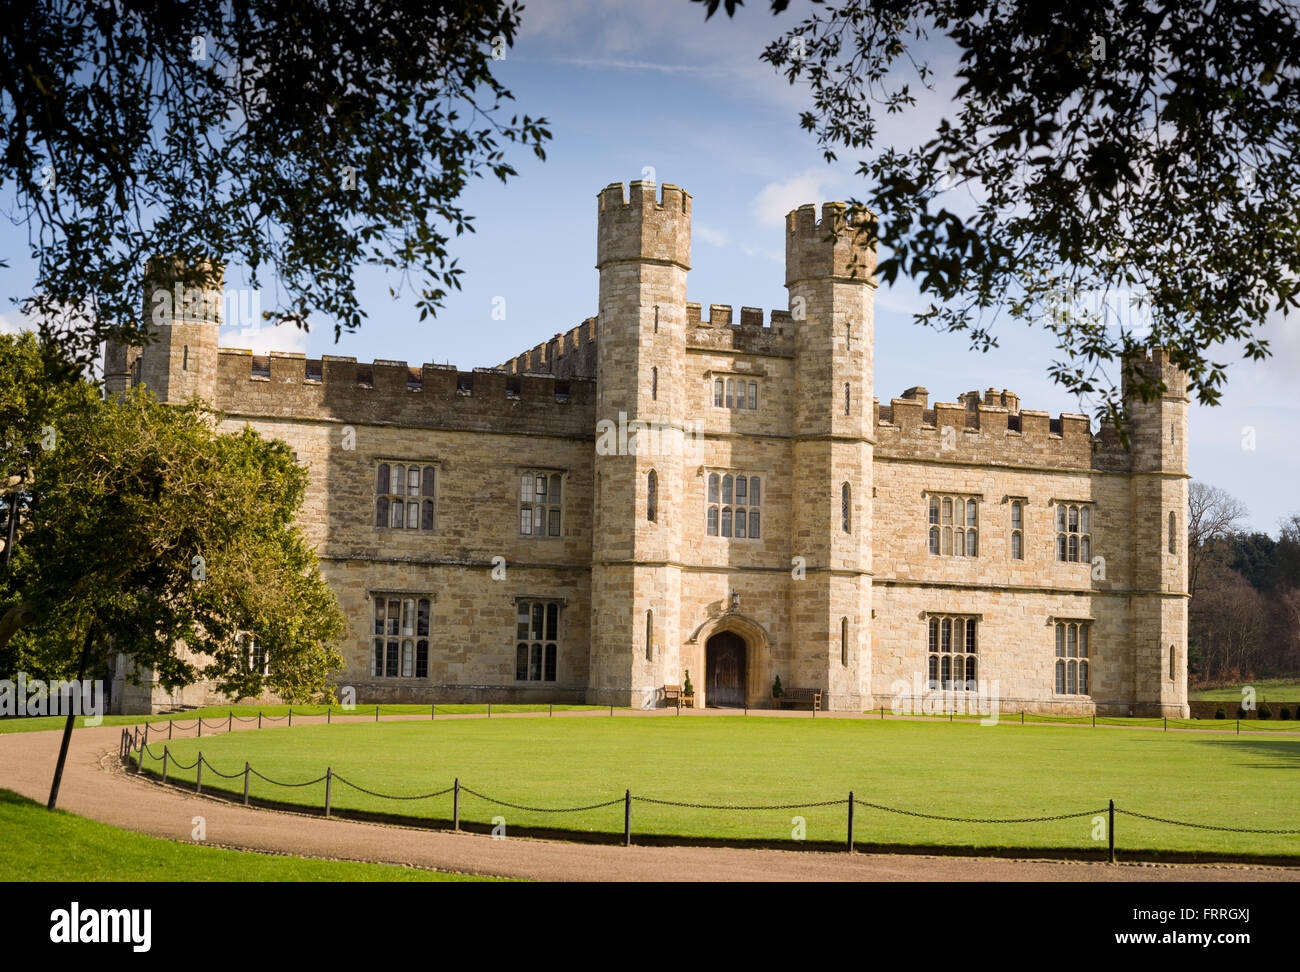 Leeds Castle, near Maidstone in Kent, exterior. Main part of castle. - Stock Image